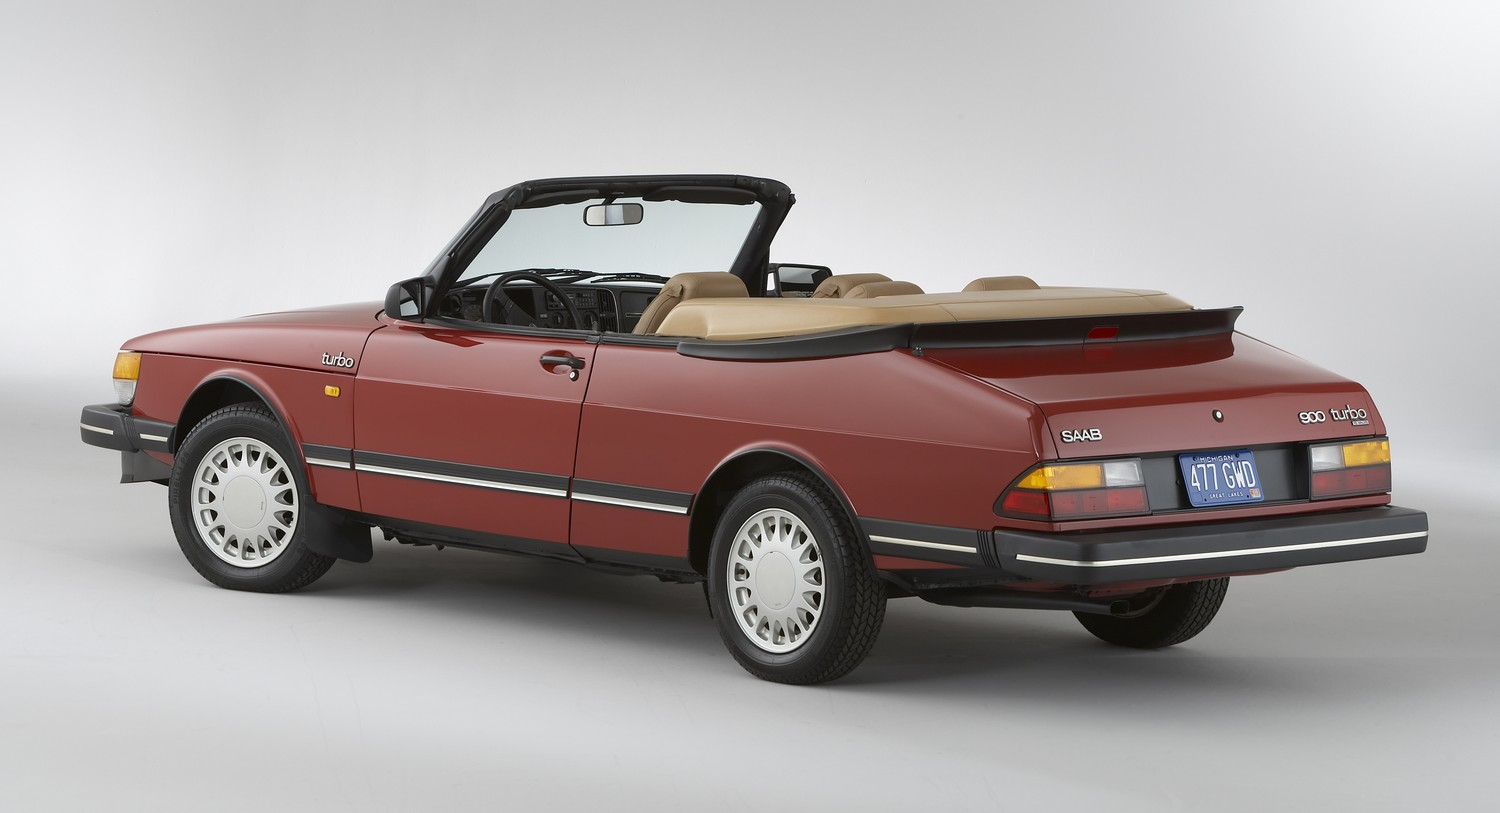 saab 900 turbo convertible prototype photos reviews news specs buy car. Black Bedroom Furniture Sets. Home Design Ideas